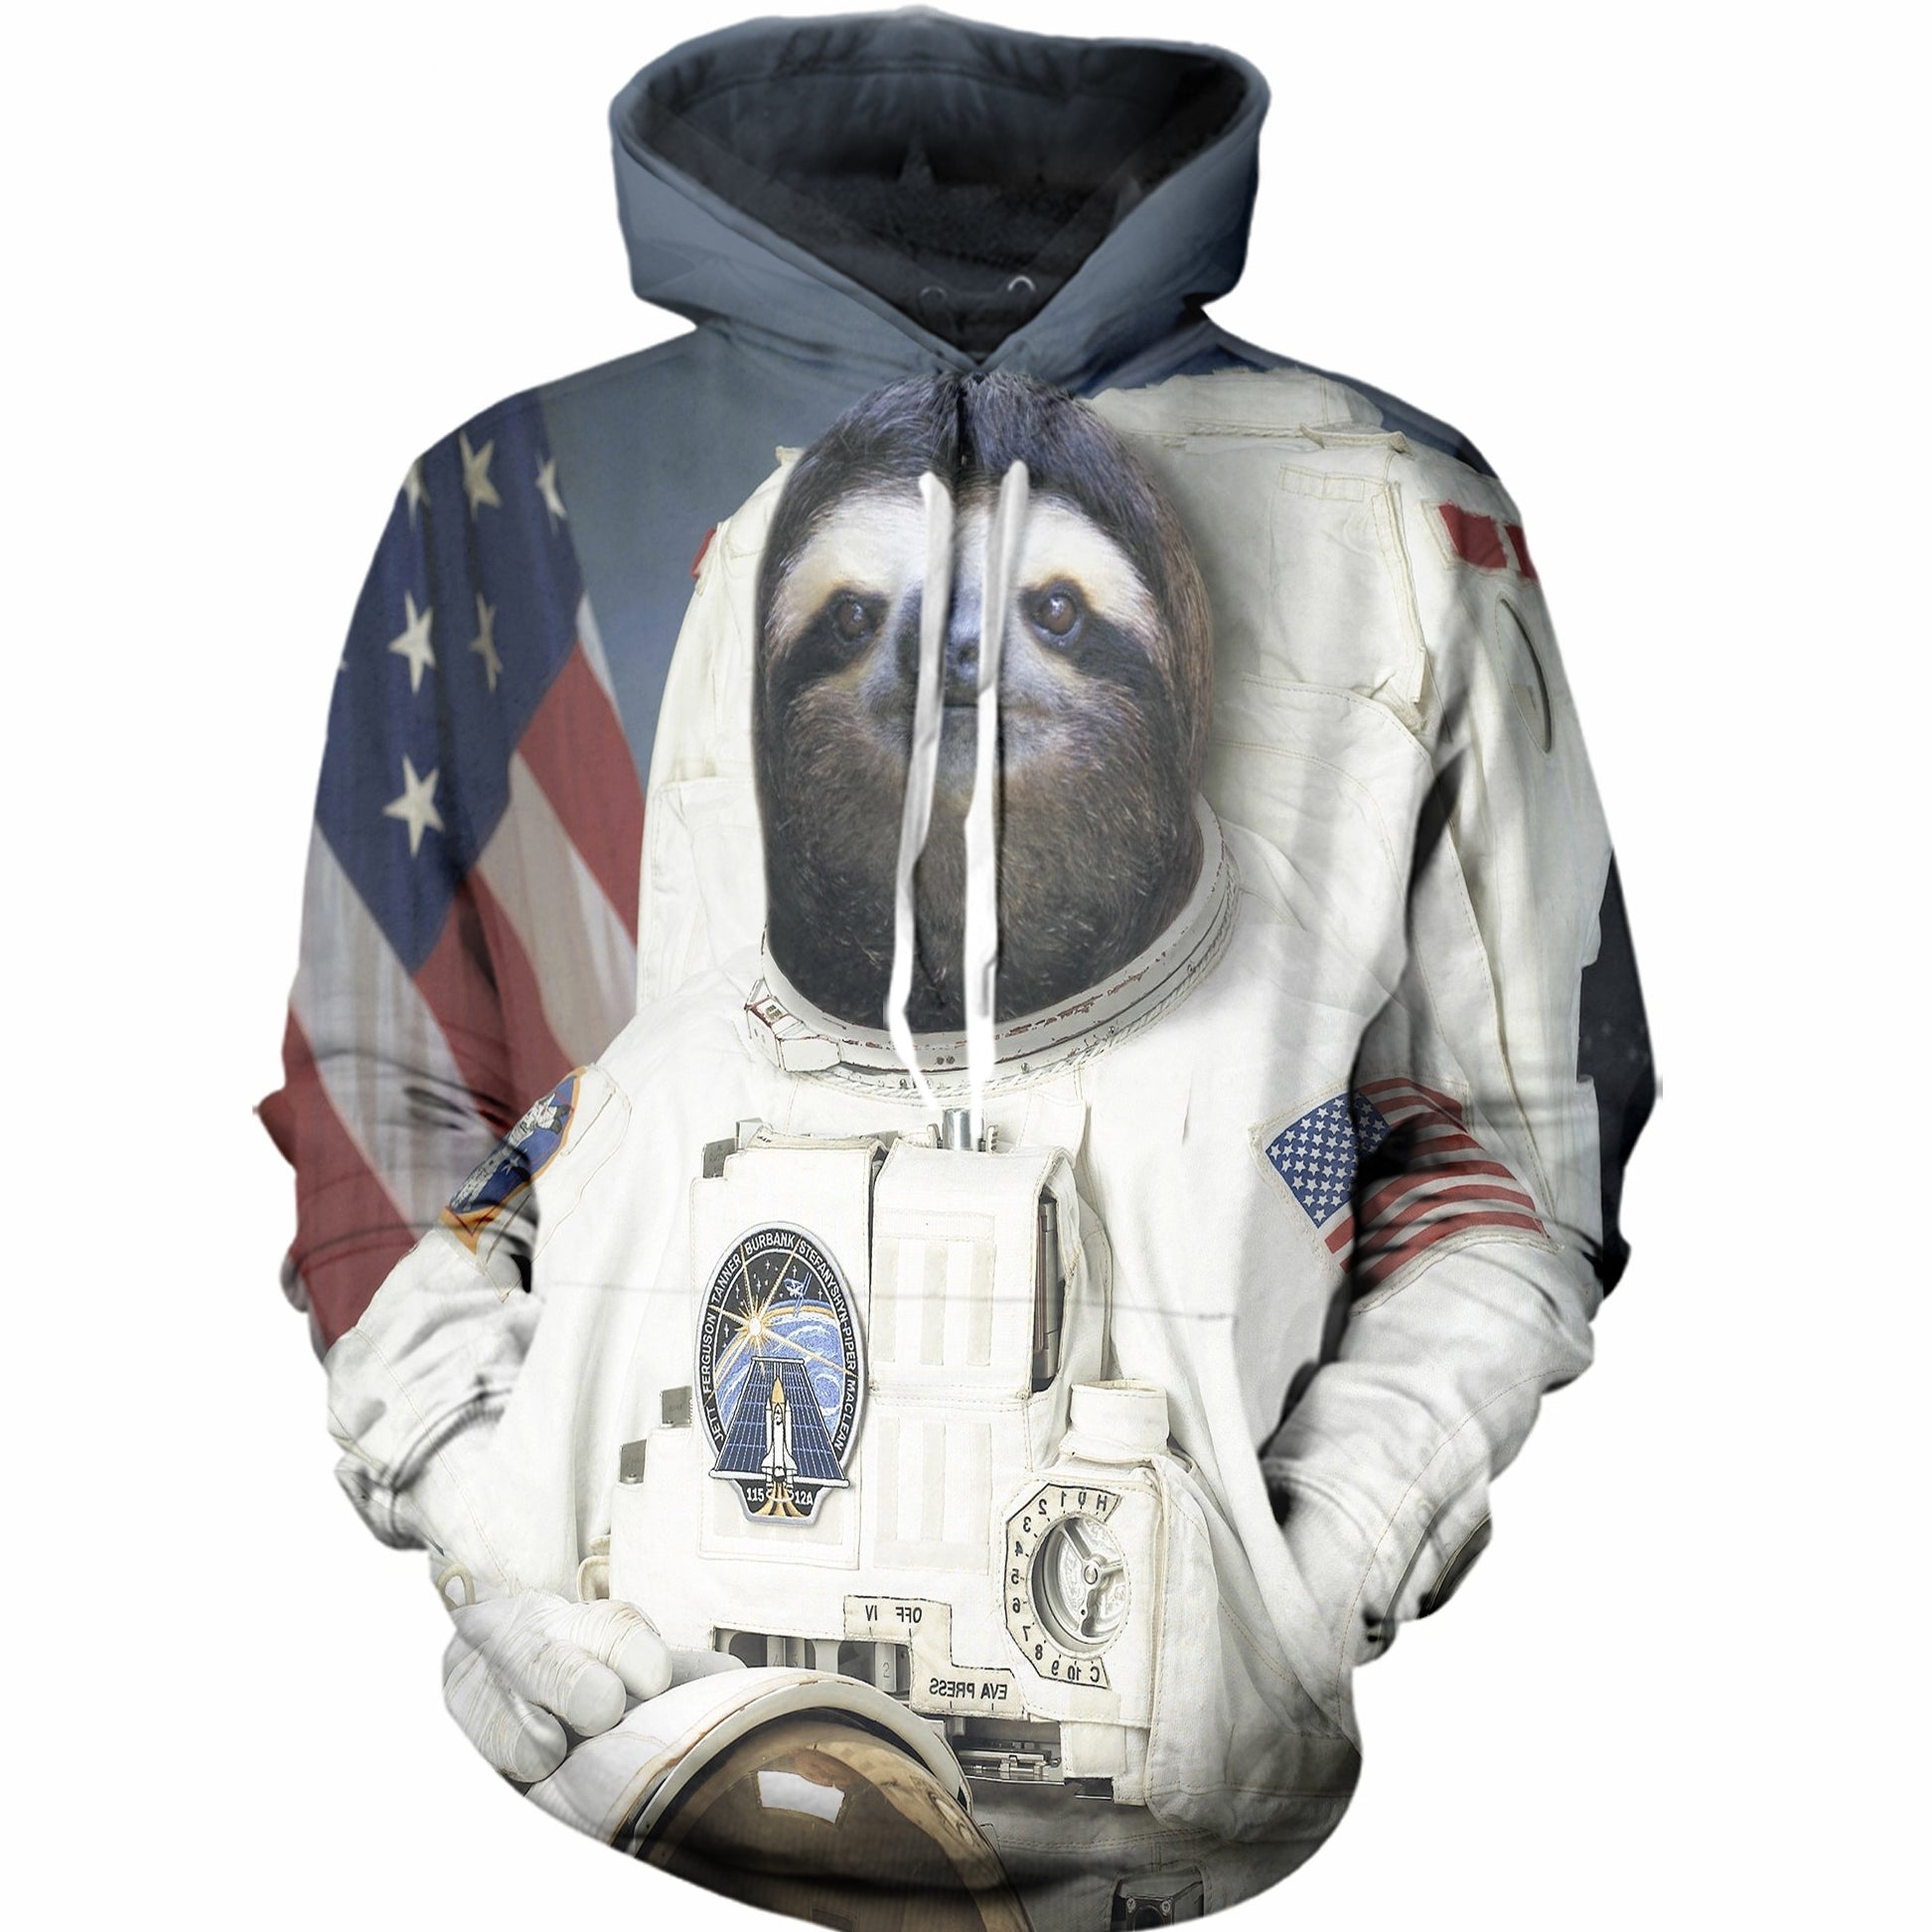 The Sloth Astronaut Mission Hoodie